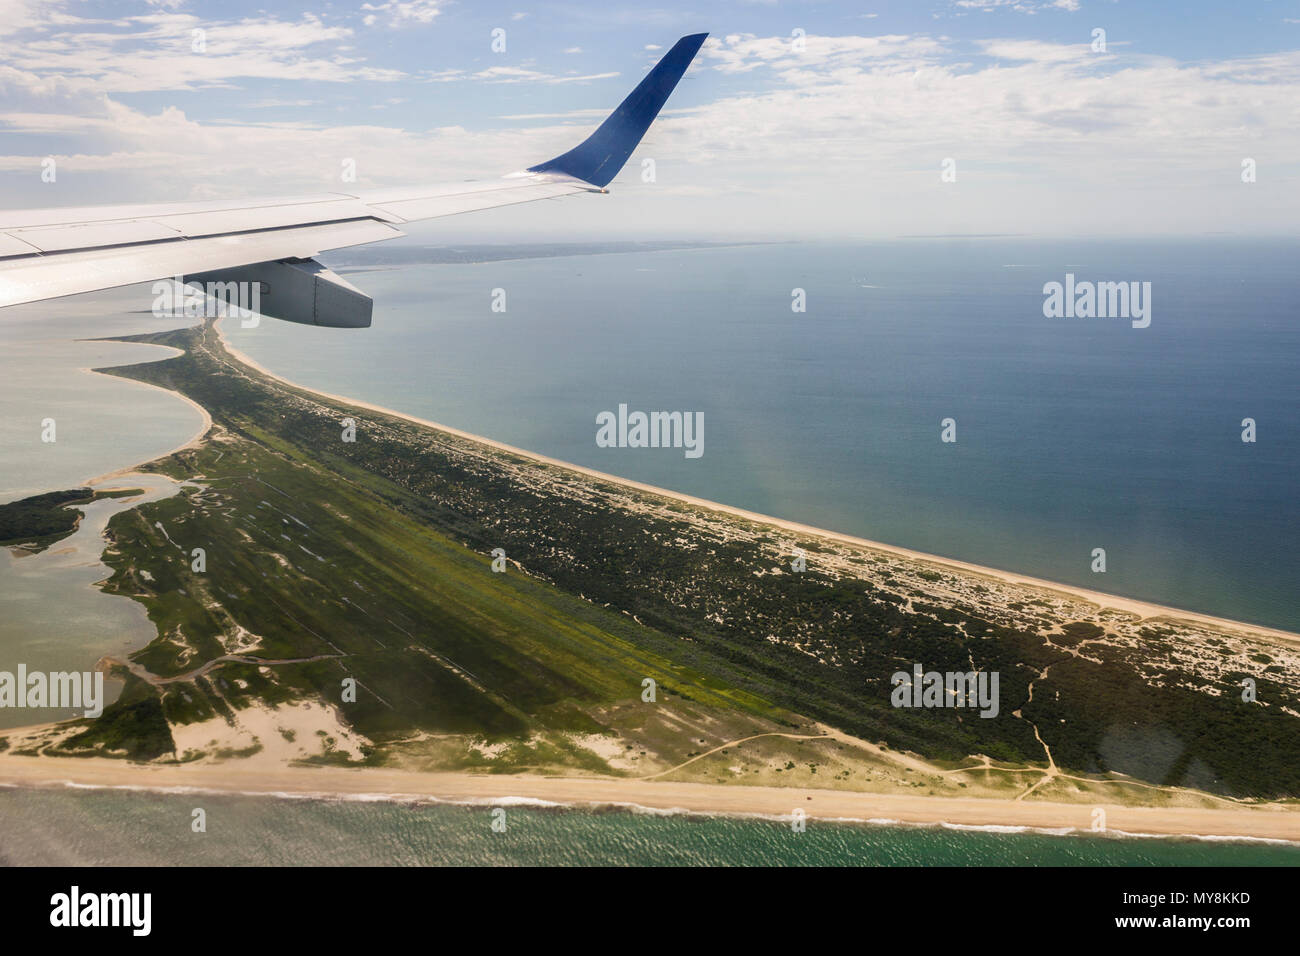 Views of the Head of the Harbor in Nantucket island, Massachusetts, from a charted flight - Stock Image